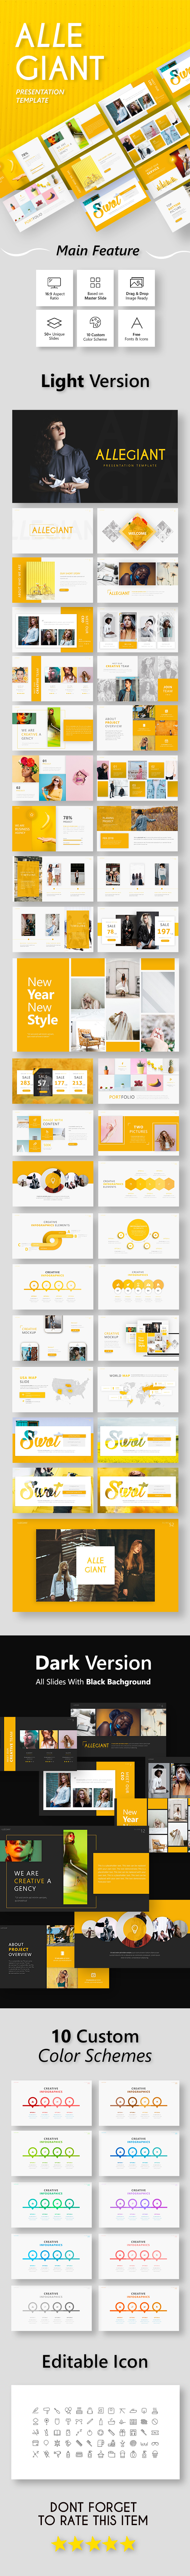 Allegiant - Fashion Presentation Template - Creative PowerPoint Templates